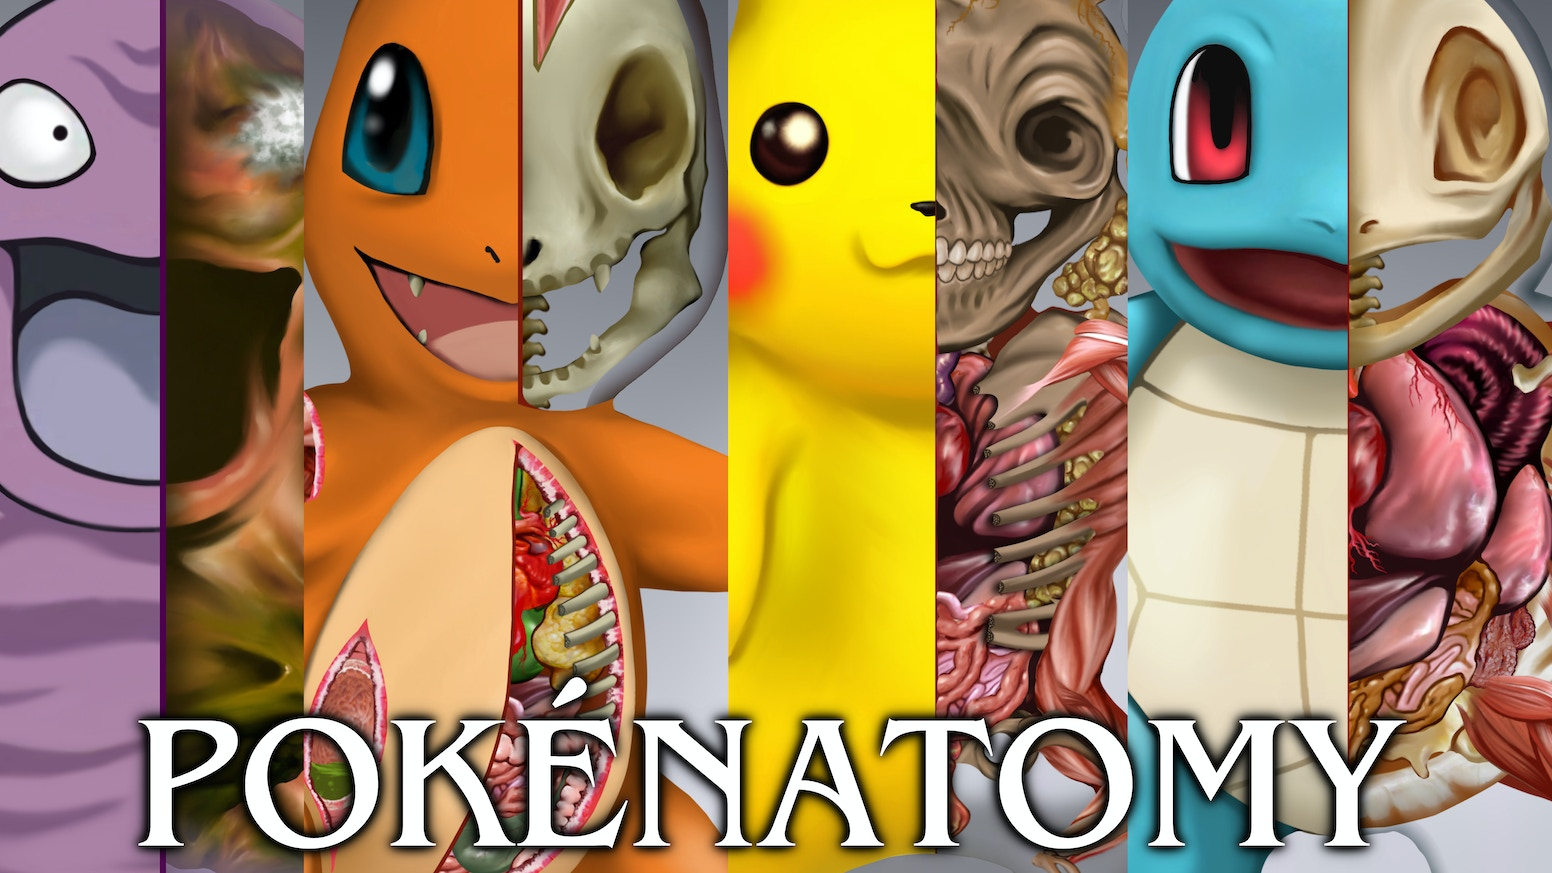 A transformative educational art project, dissecting, expanding, & exploring the original 150 Pokémon in a fully illustrated artbook.